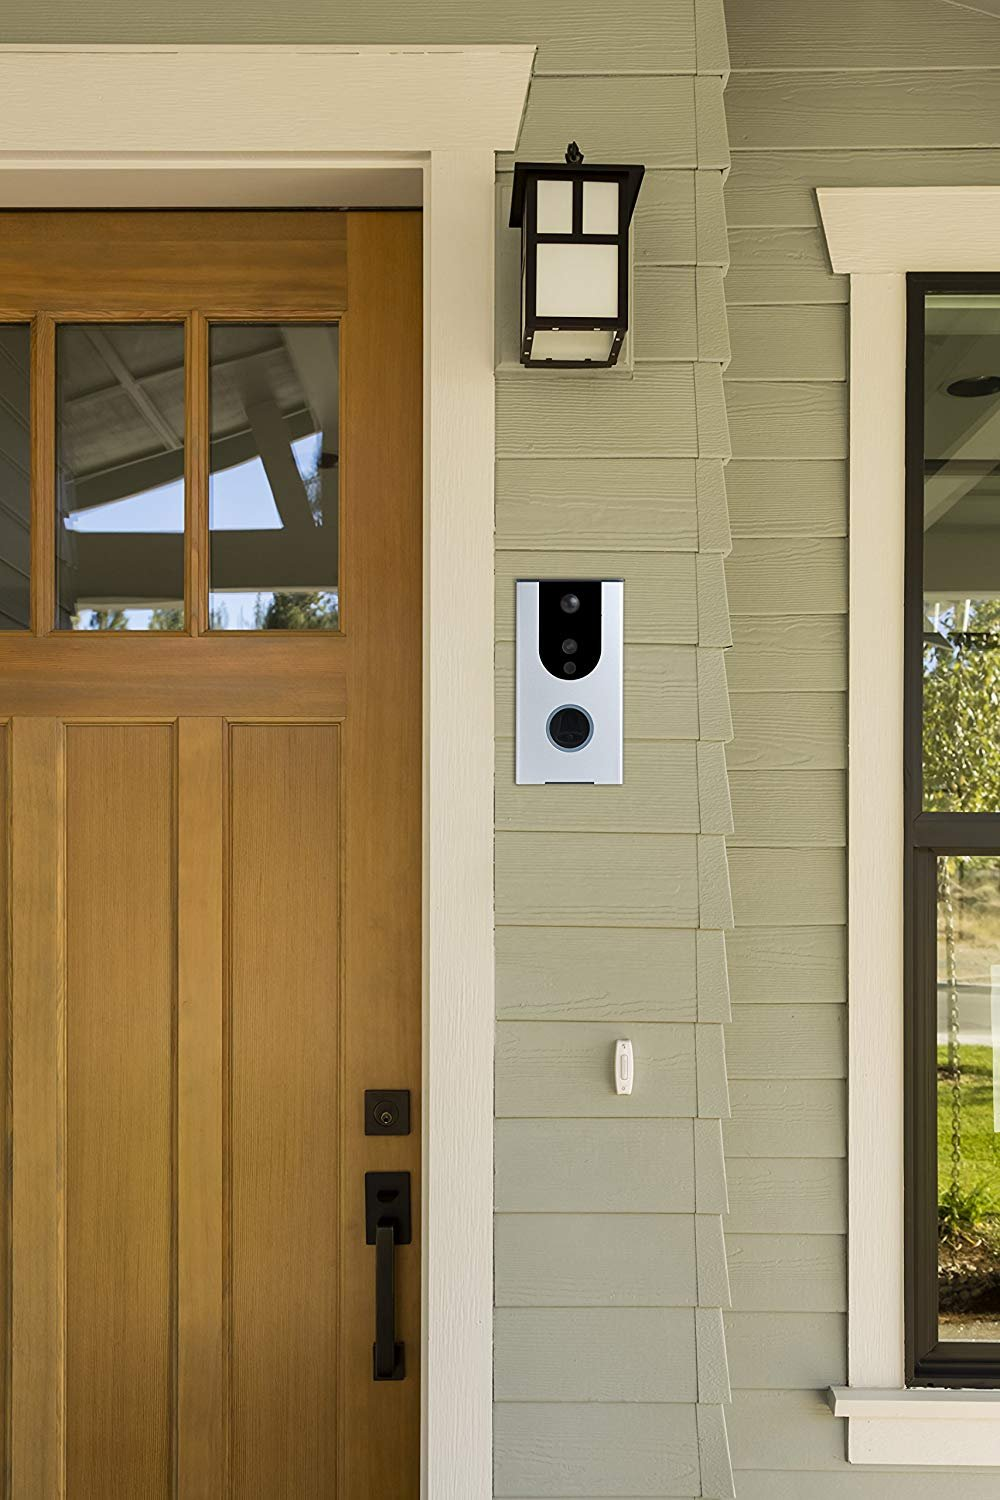 Battery Powered Wi-Fi Video Doorbell Camera, Wireless Doorbell Camera with Built in 8G card, Motion Detection, Night Vision, with Two Way Audio works with Iphone and Android by Eleganci Home by Eleganci Home (Image #2)